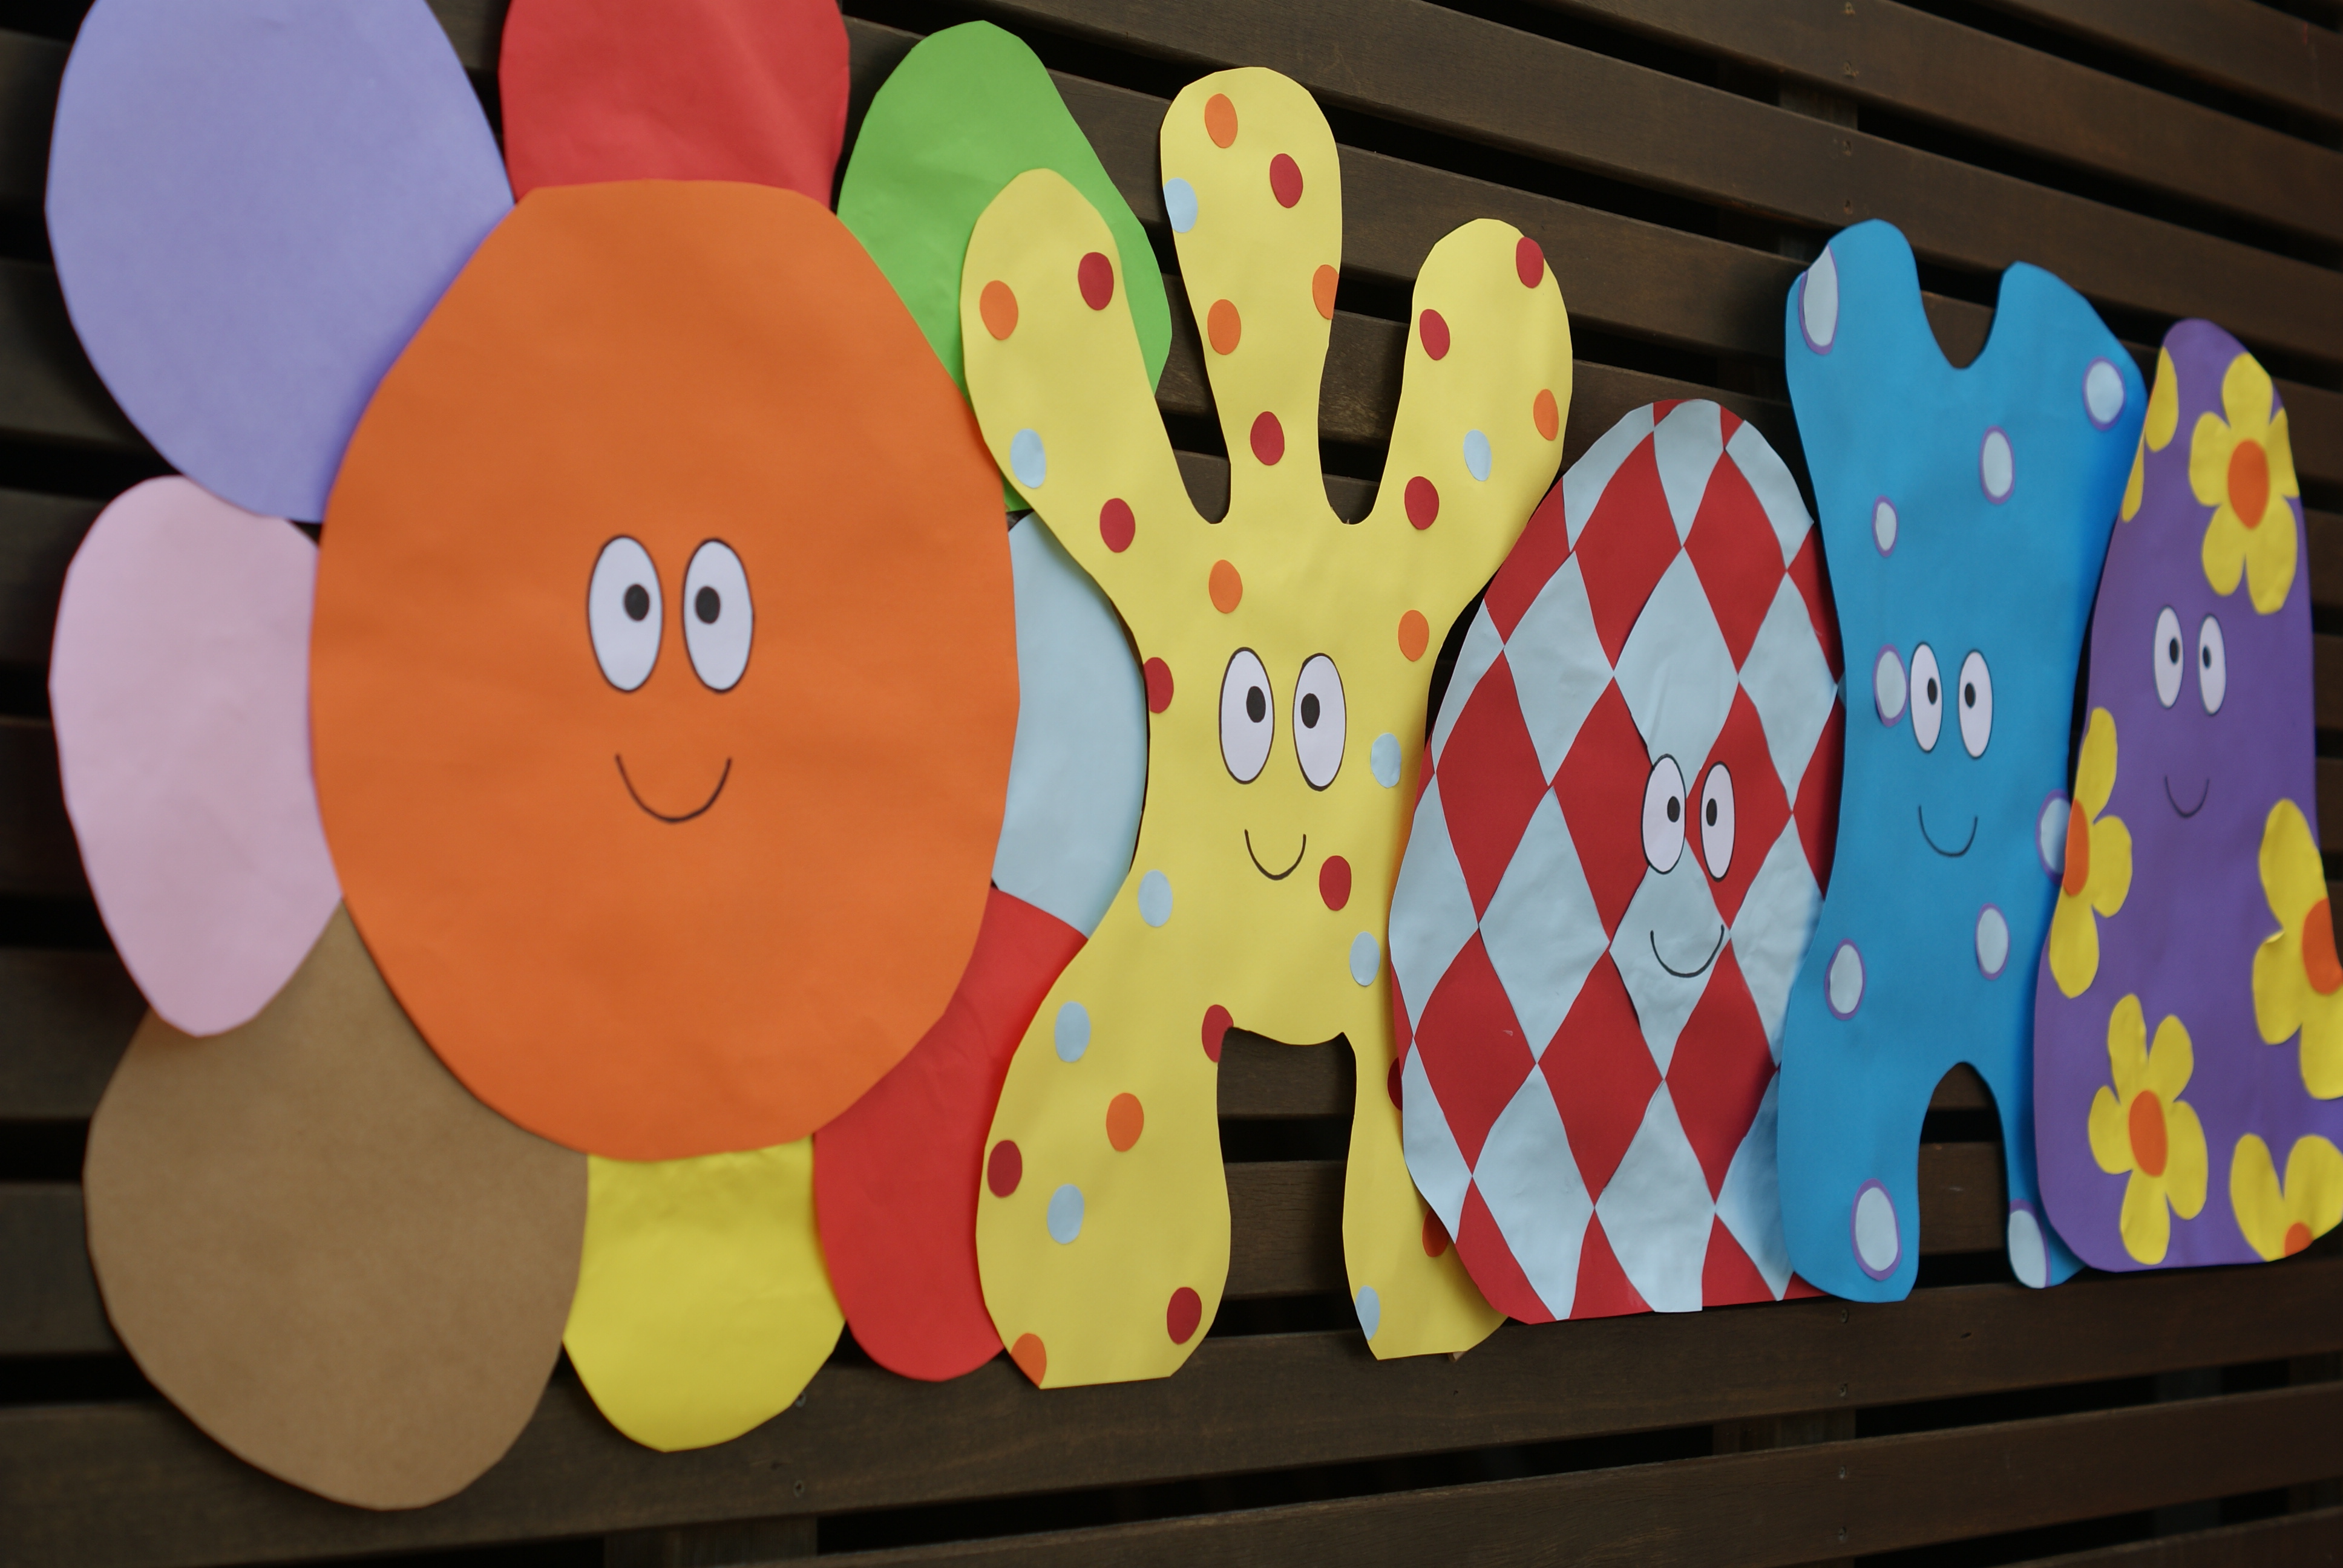 Large Hahoo Cut Outs For The Wall In The Night Garden Party